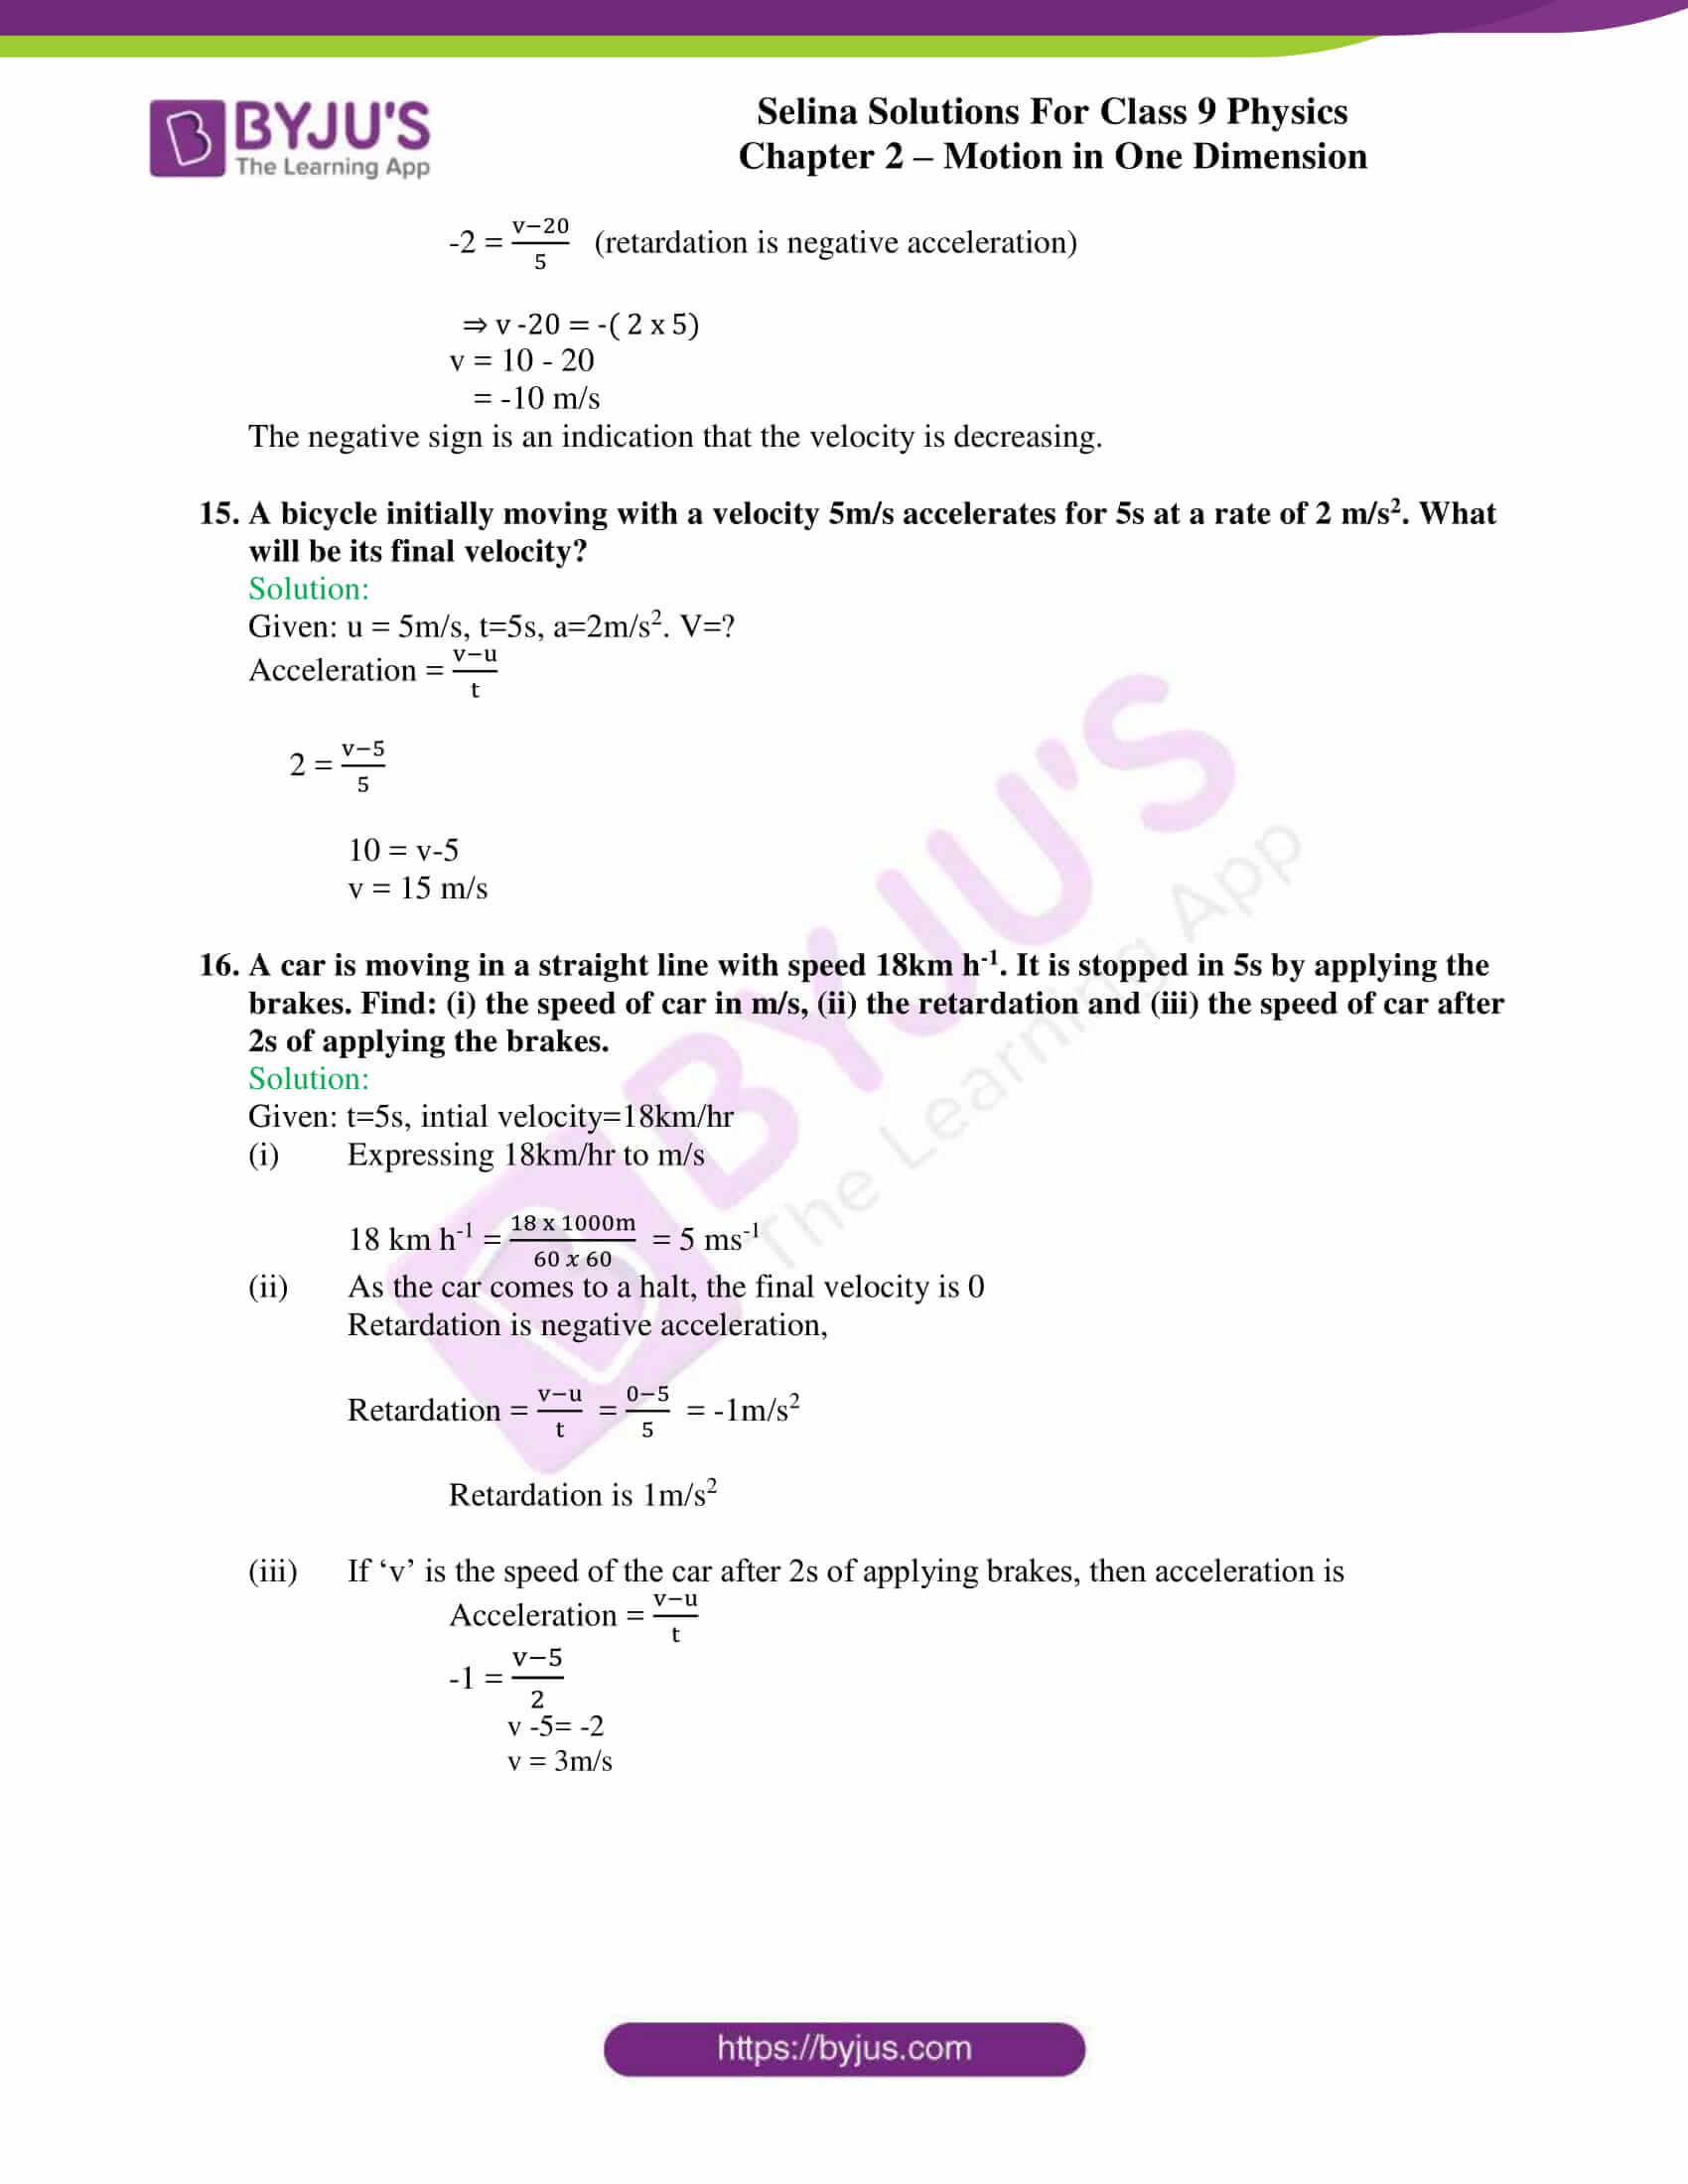 selina solutions class 9 physics chapter 2 Motion in One Dimension part 11